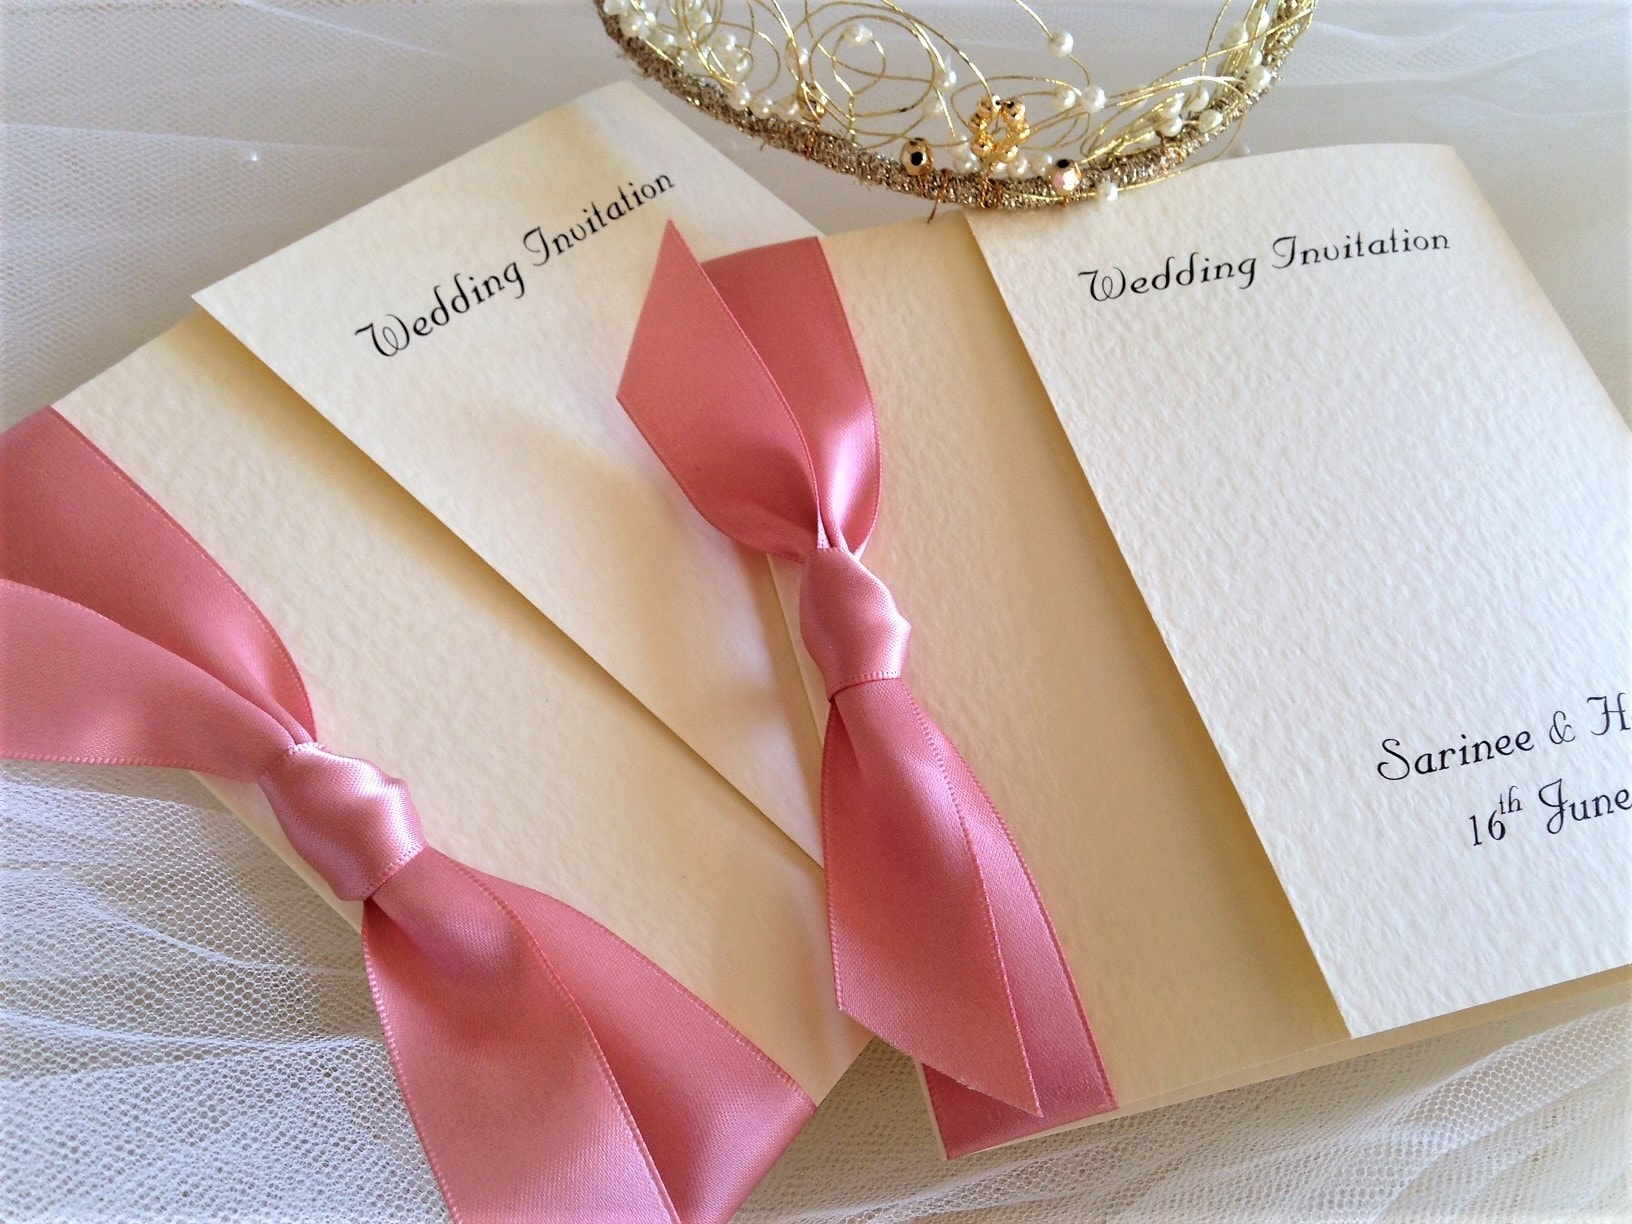 Shop wedding invites by colour to match your wedding colour scheme.